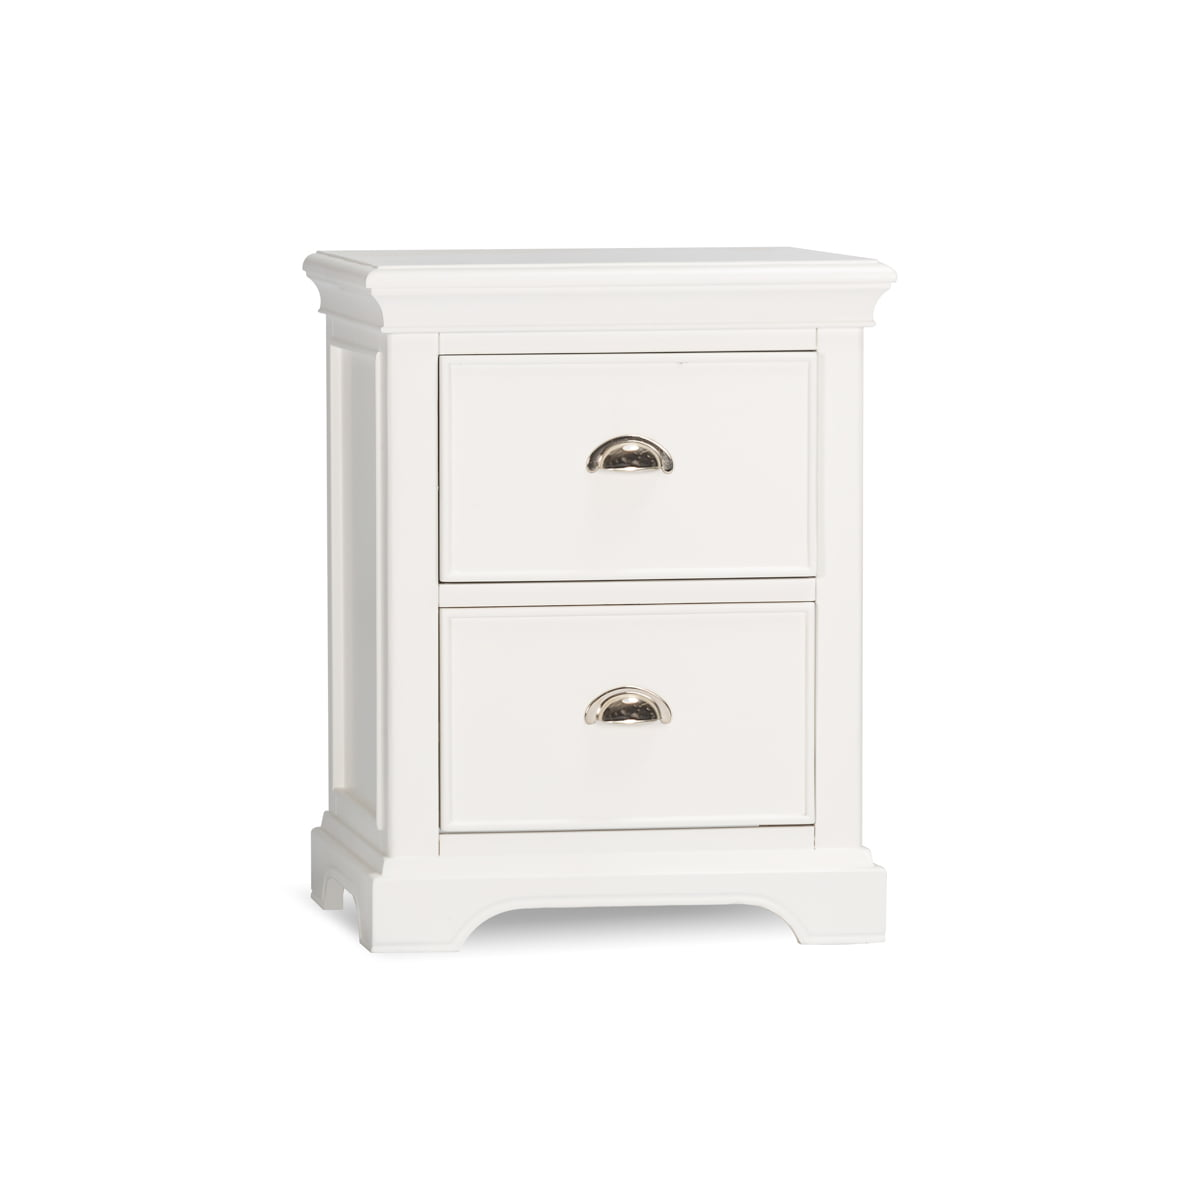 White 2 Drawer Nighstand